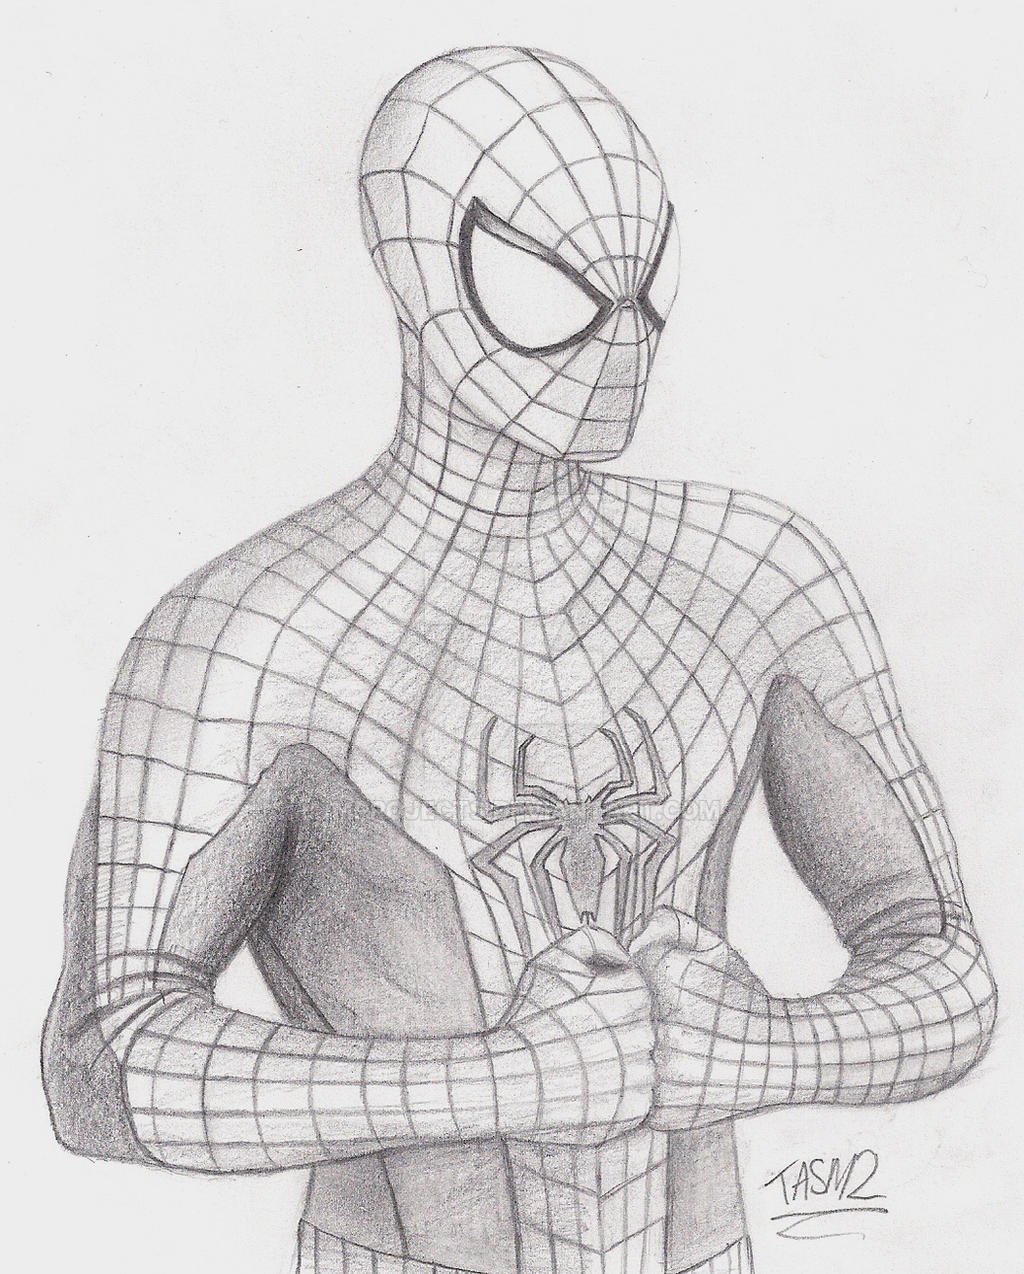 The amazing spider man 2 spidey sketch by mprojects